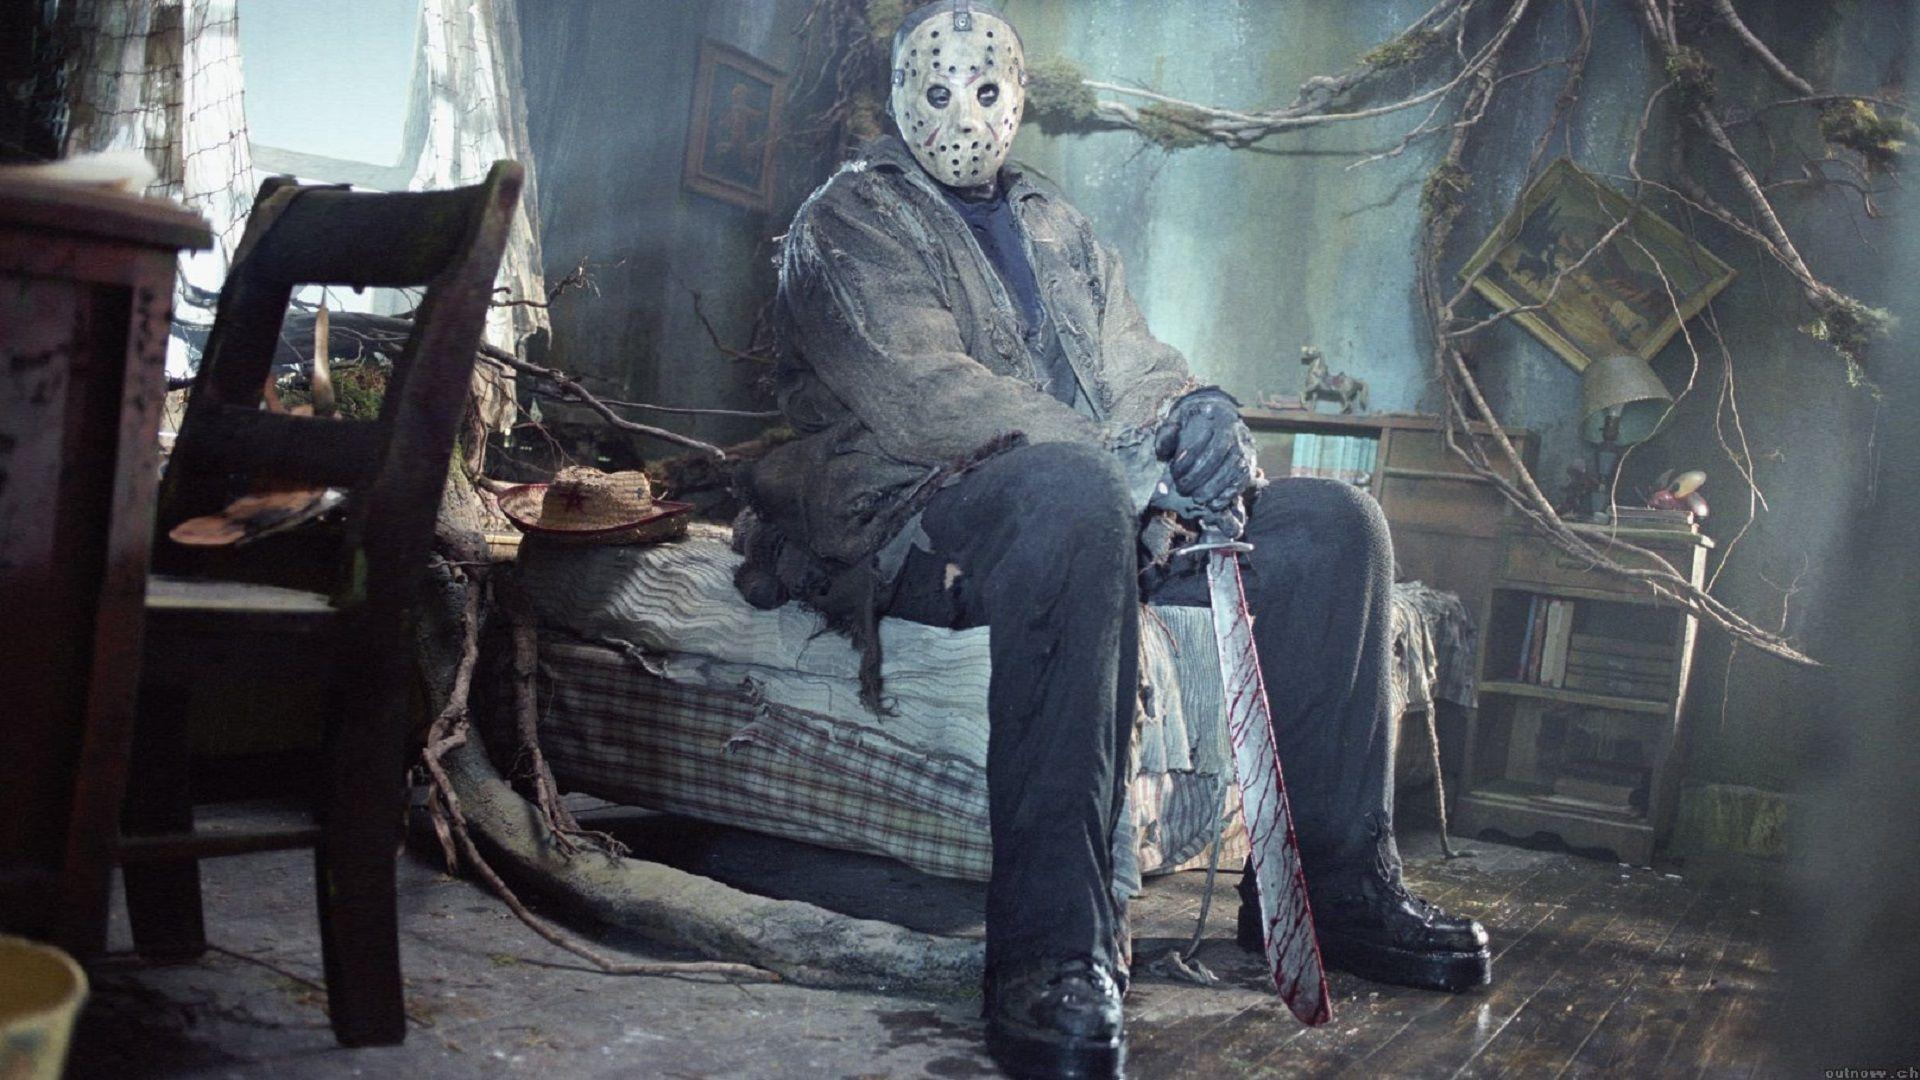 ZHongyaoDQT Graphics: Friday The 13th Wallpapers, by Stacia Kuhns